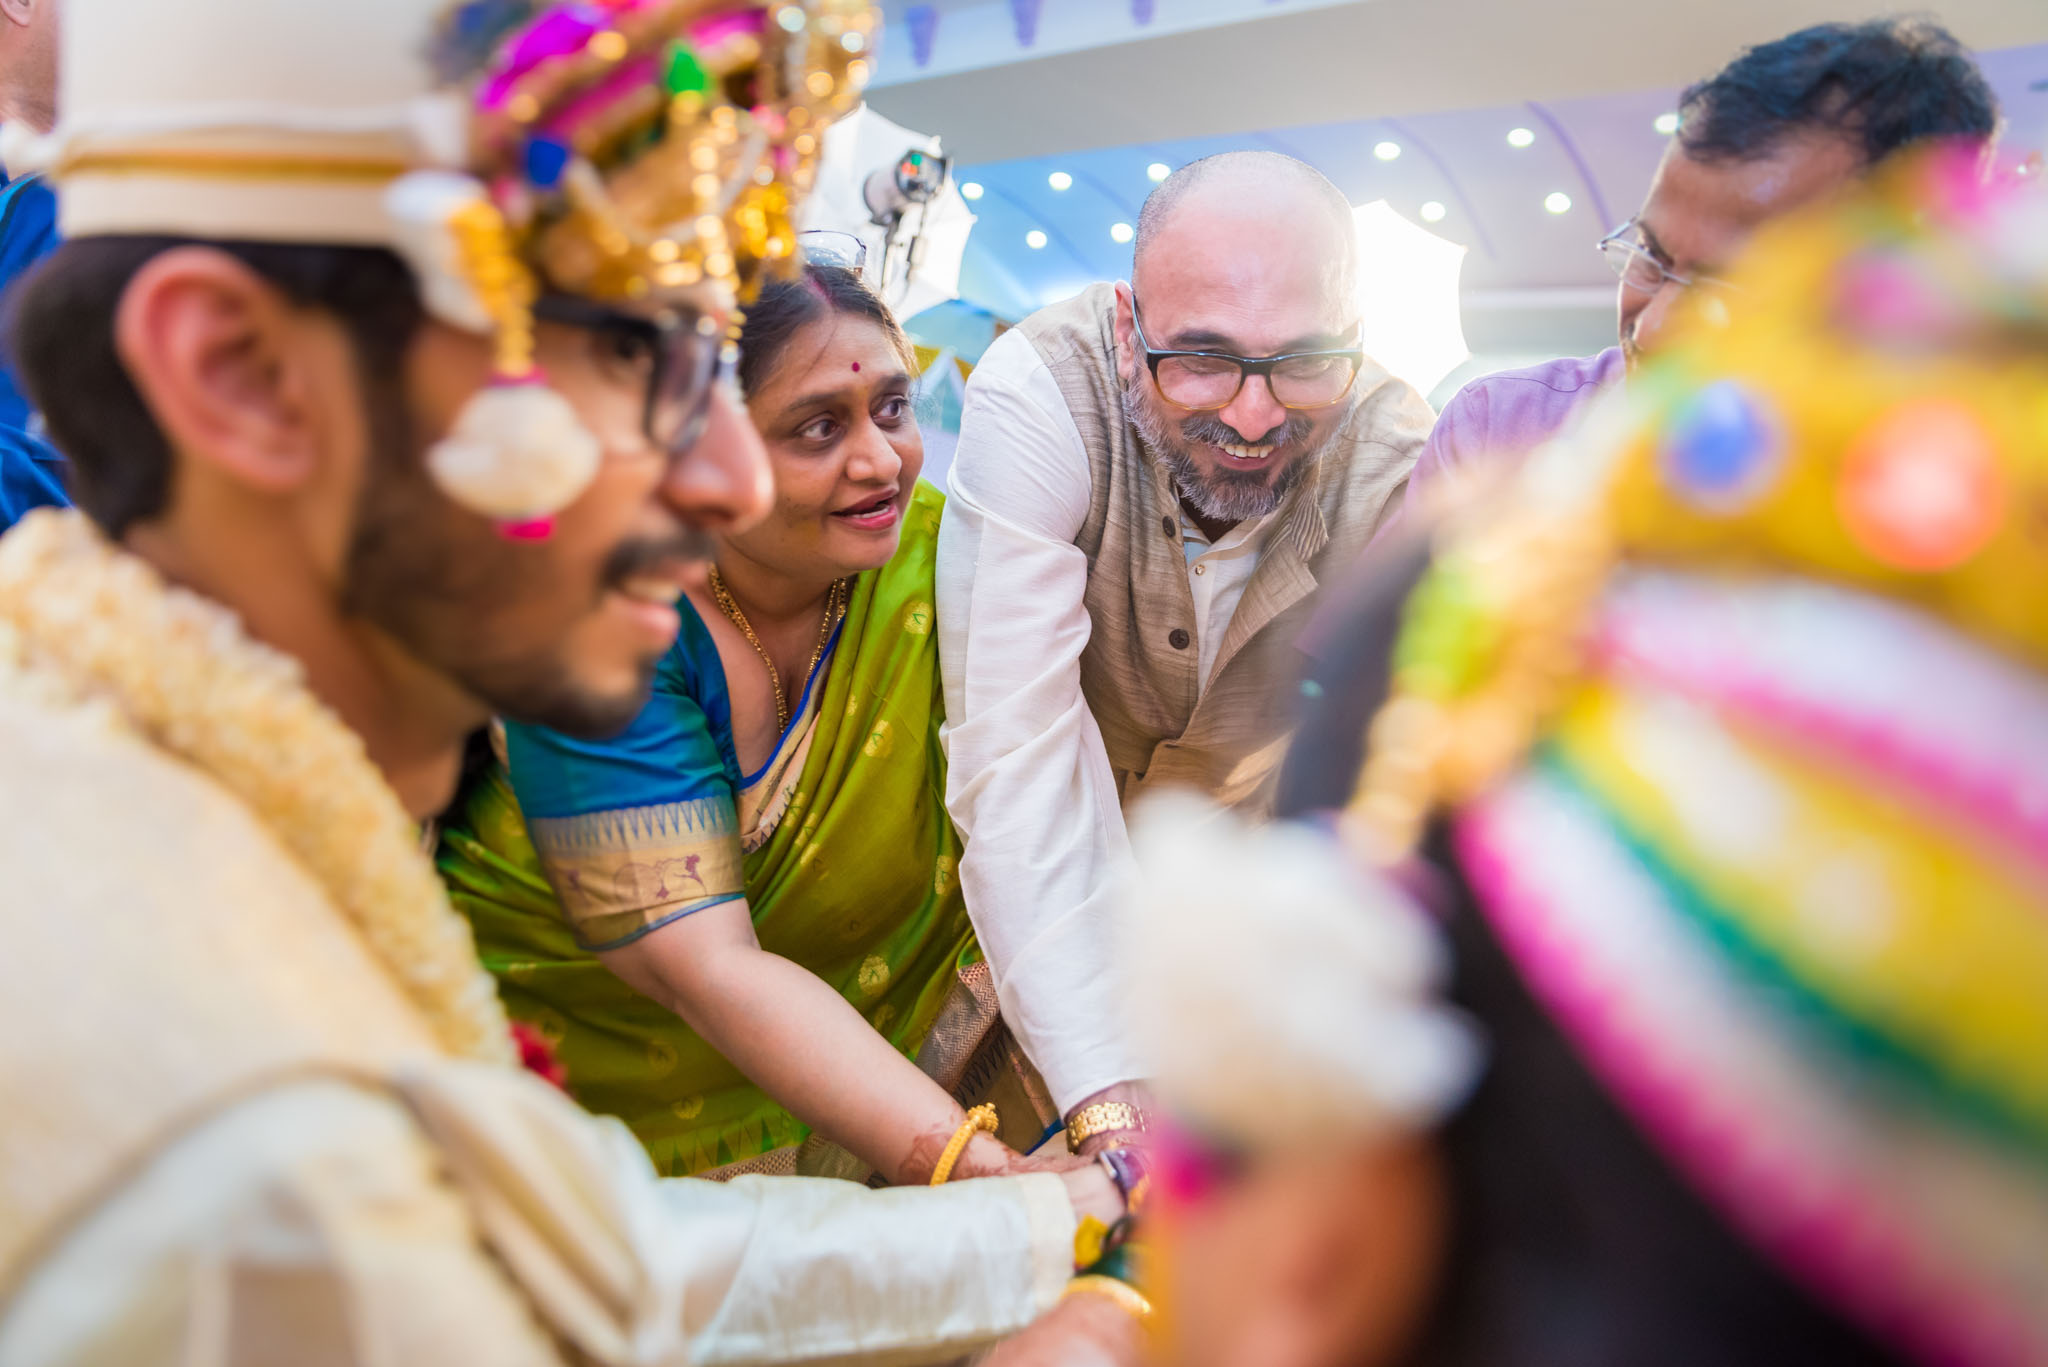 WhatKnot-Candid-Wedding-Photography-Mumbai-Bangalore-207